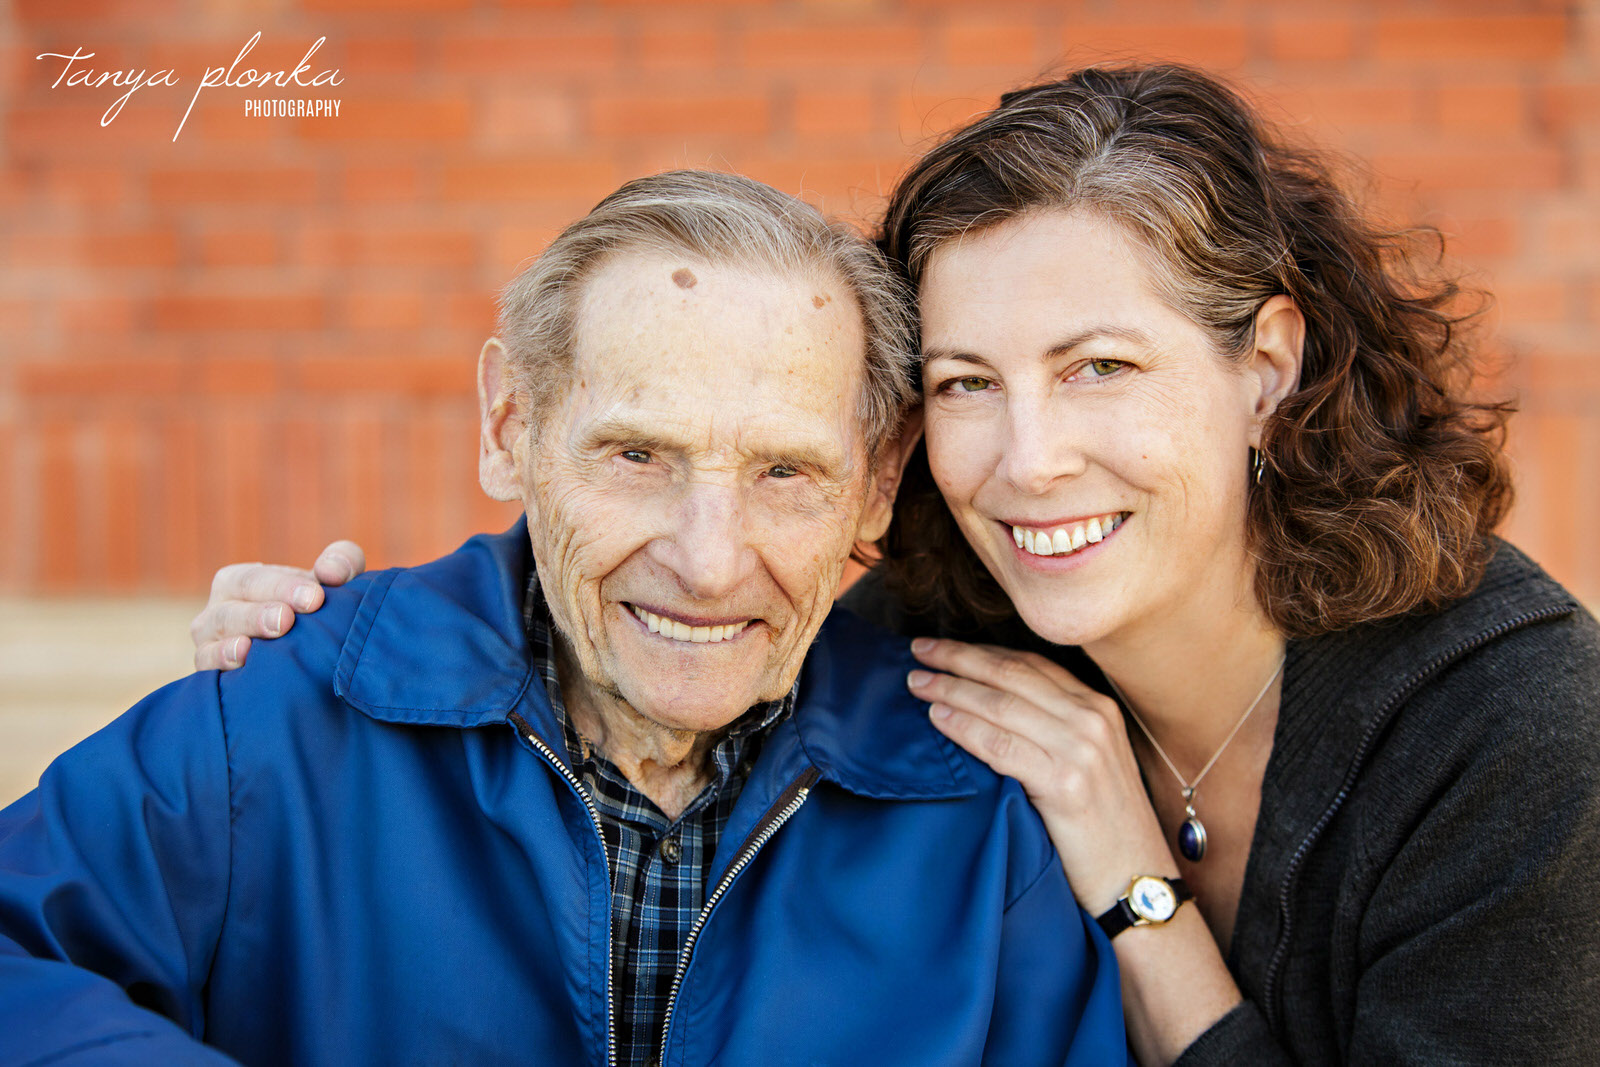 close up photo of woman with her elderly grandfather in front of brick wall